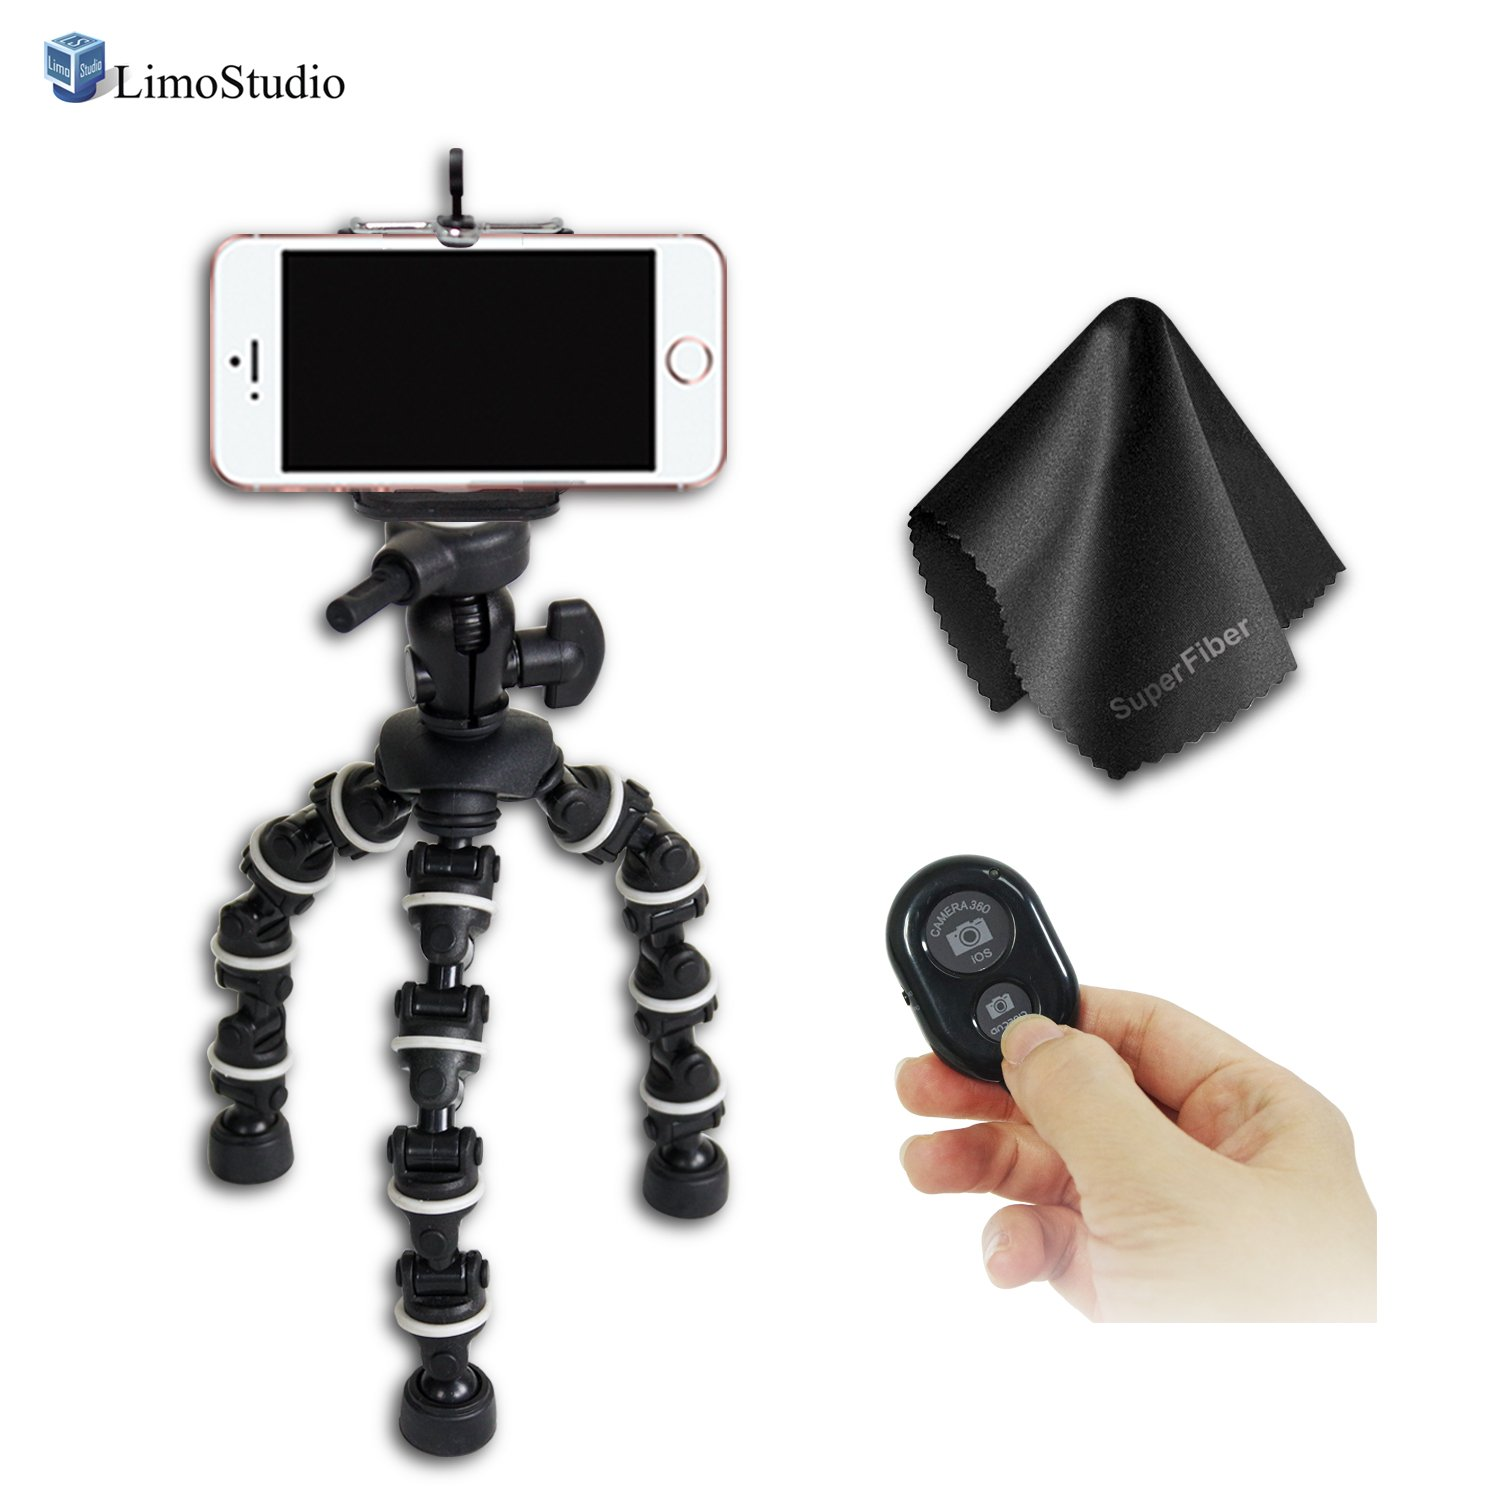 """LimoStudio 7.5"""" Adjustable Flexible Transformation Tripod for DSLR Cameras and Cell Phones with Spring Clip Holder, Bluetooth Remote Control Shutter, and Super Fiber Lens Cleaning Cloth, AGG2678 by LimoStudio"""